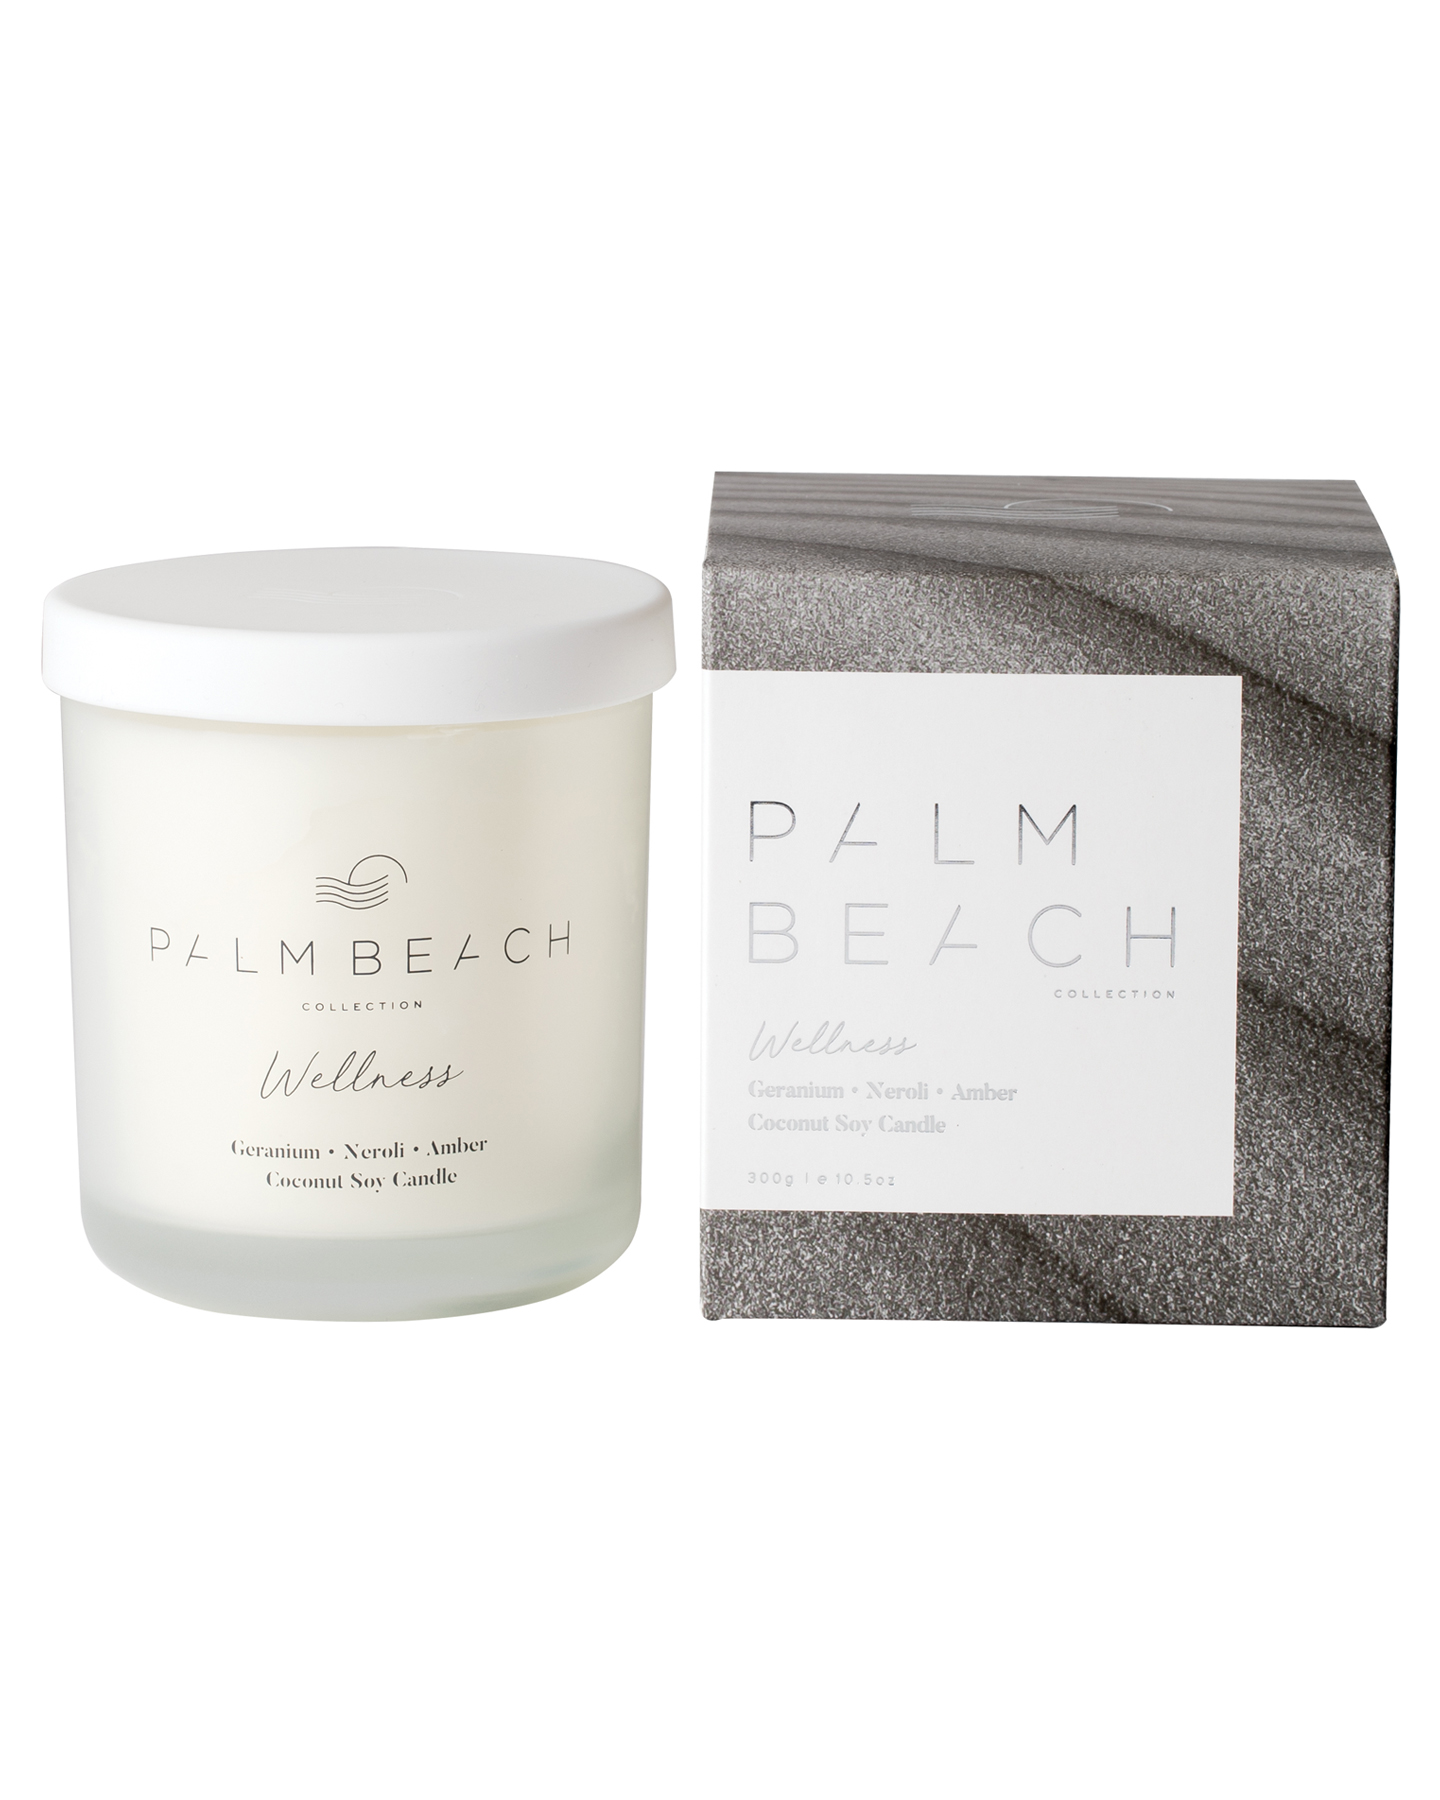 Palm Beach Collection Geranium, Neroli & Amber Wellness Candle Geranium Neroli Geranium Neroli